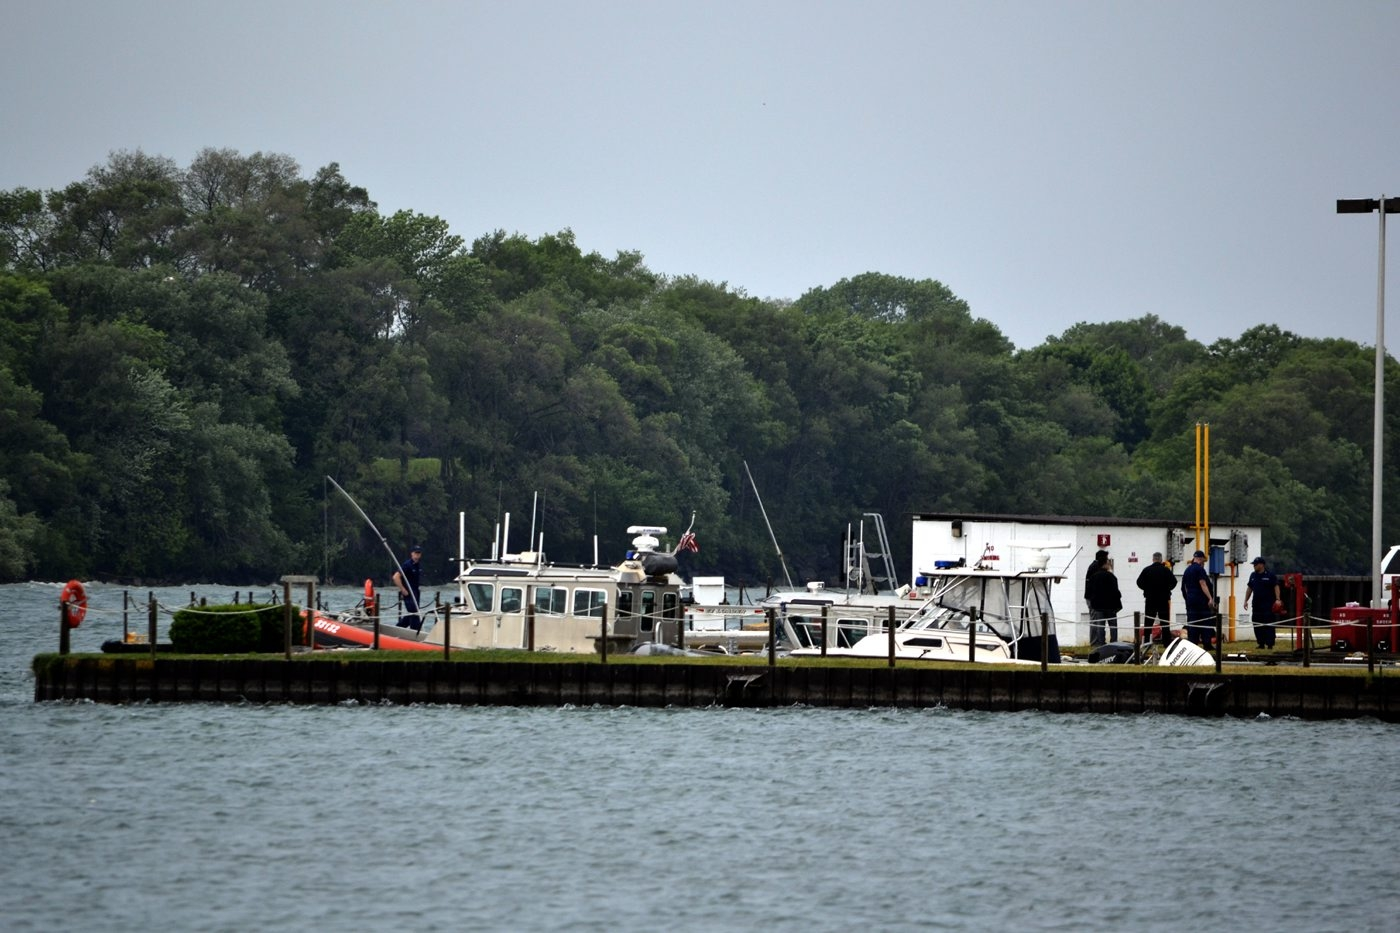 Law enforcement officials at the spot where bones were found Monday. (Larry Kensinger/Special to The News)